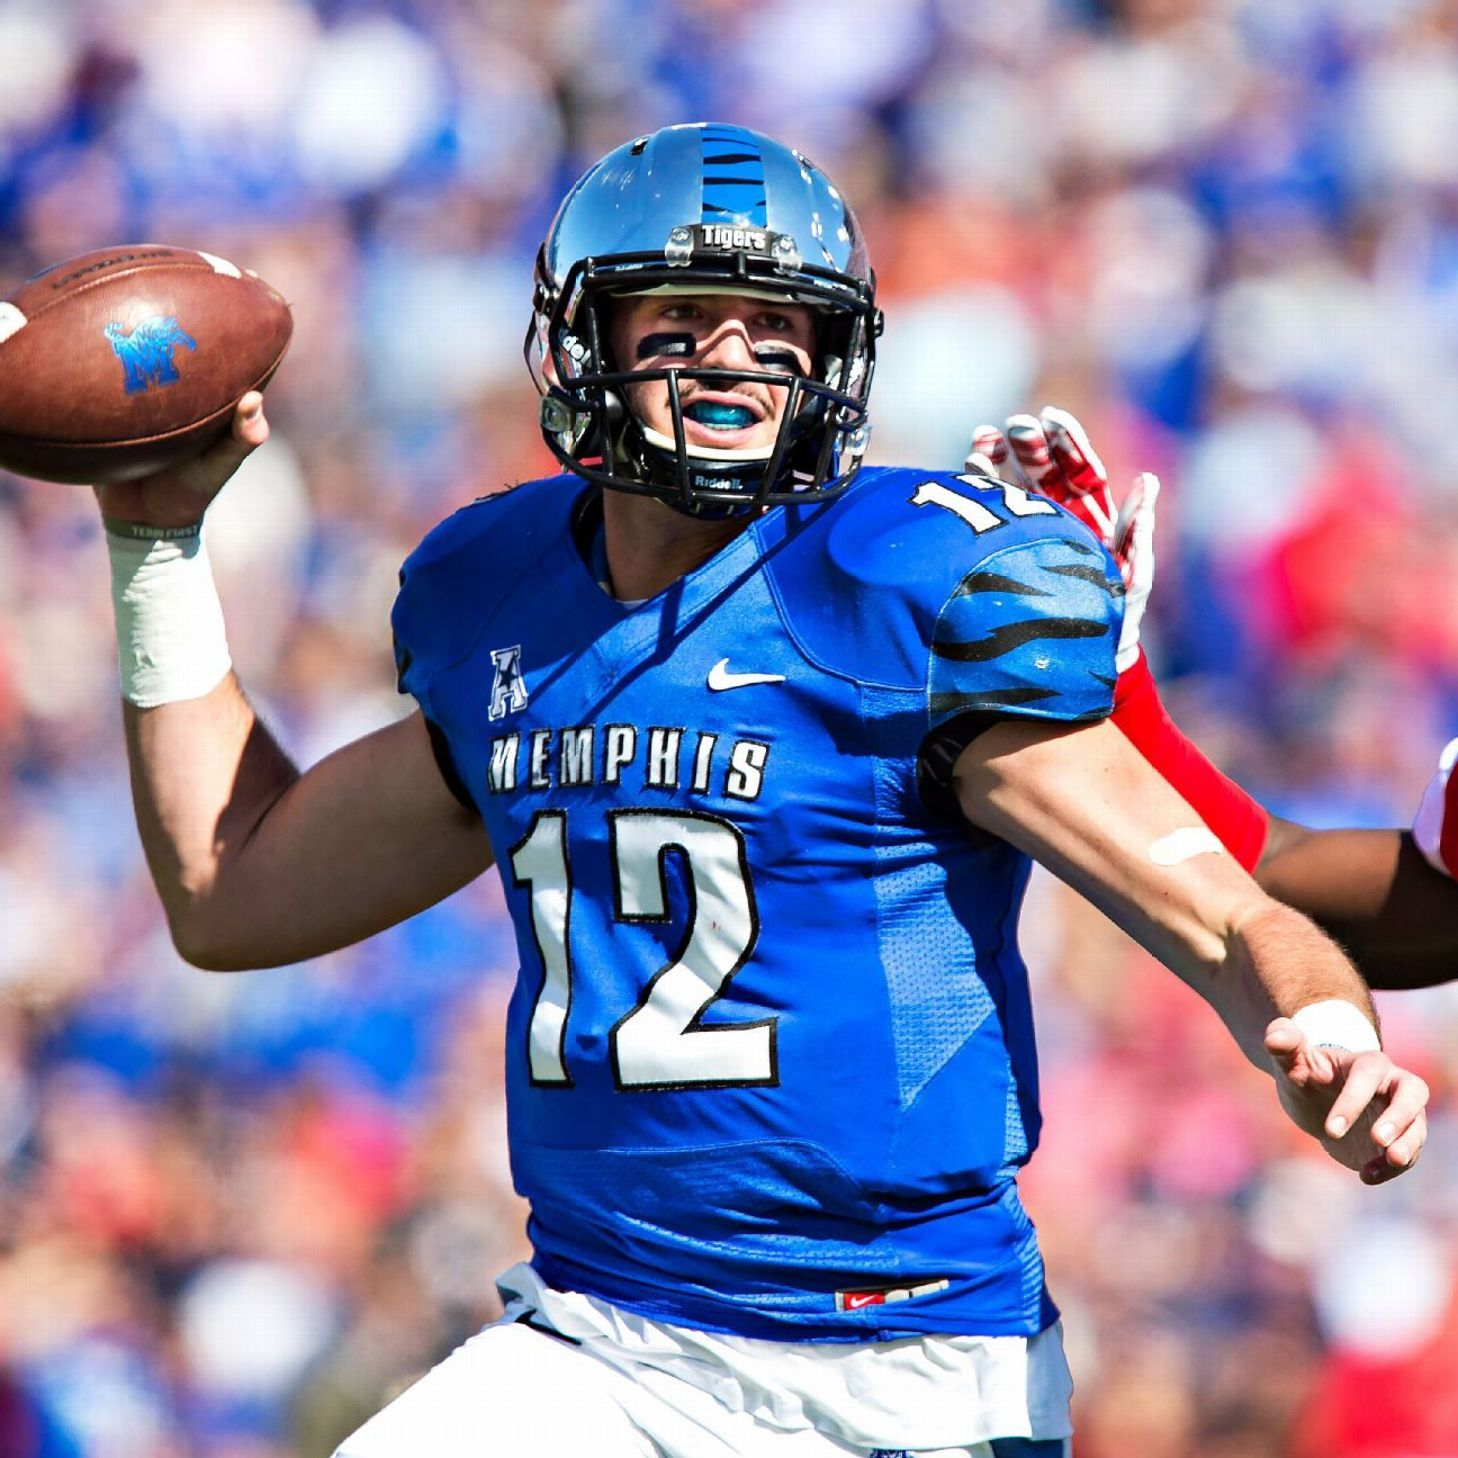 Memphis Tigers College Football Memphis News, Scores